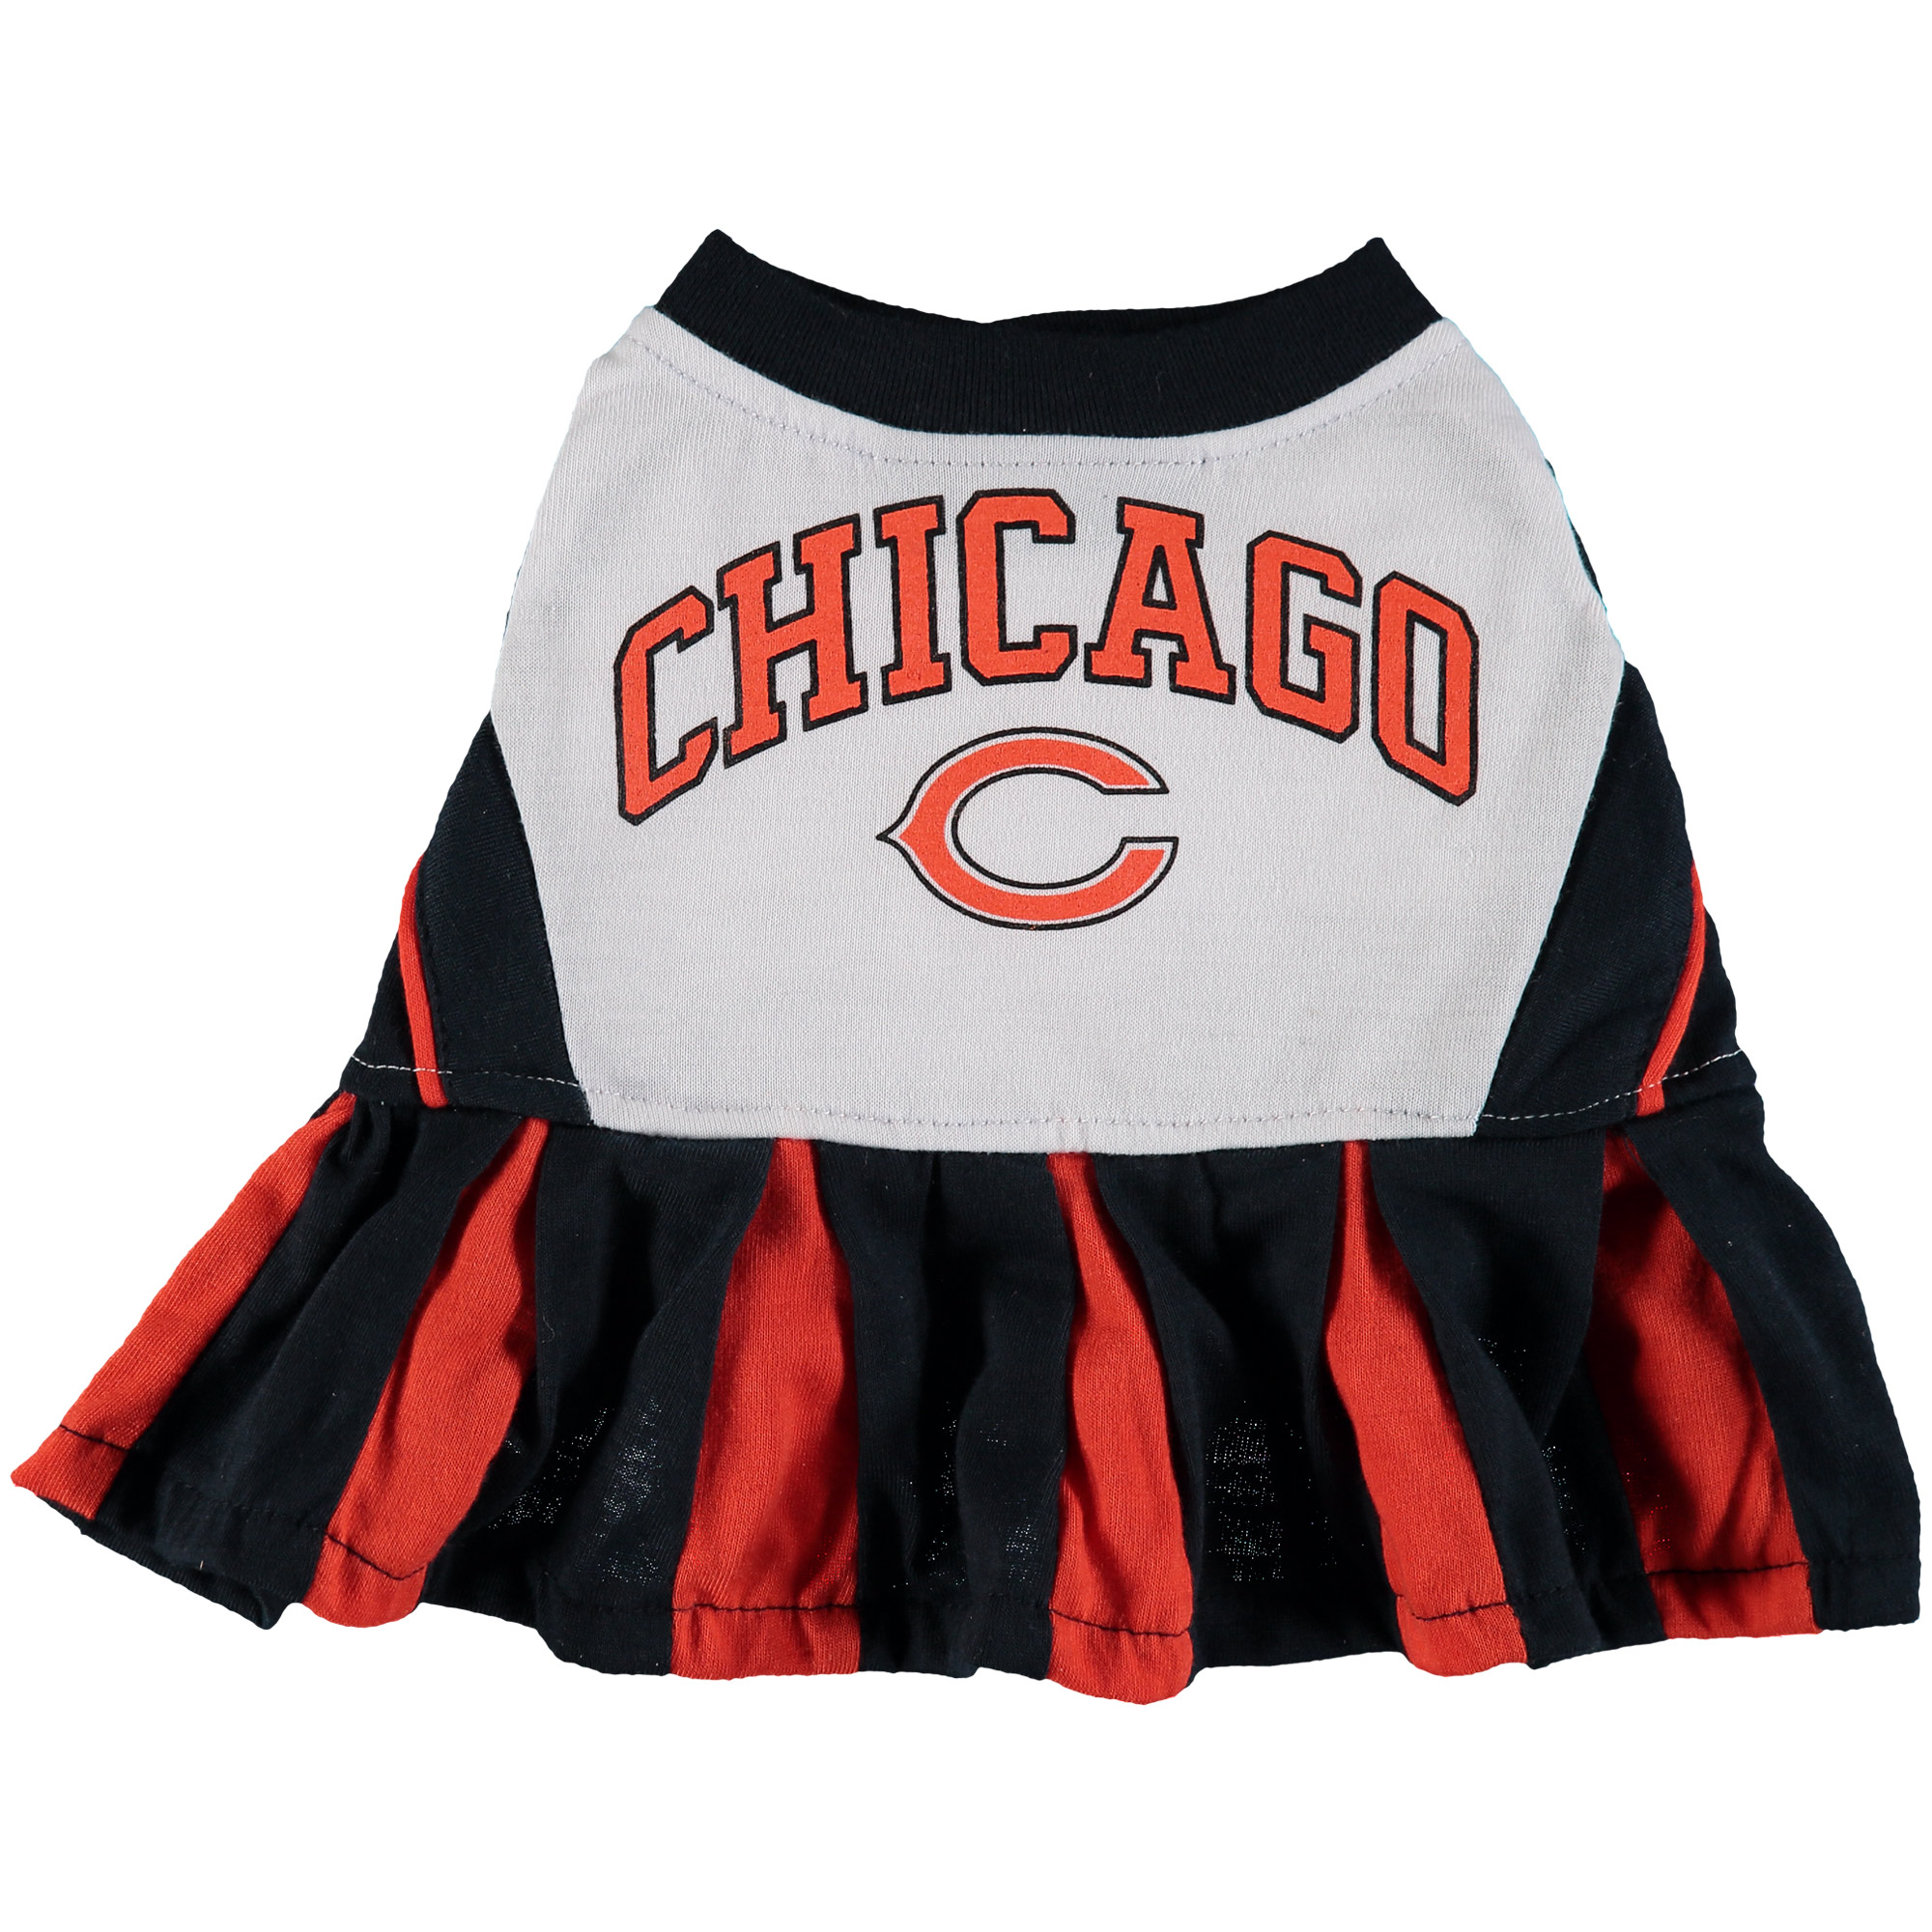 Chicago Bears Cheerleader Pet Outfit